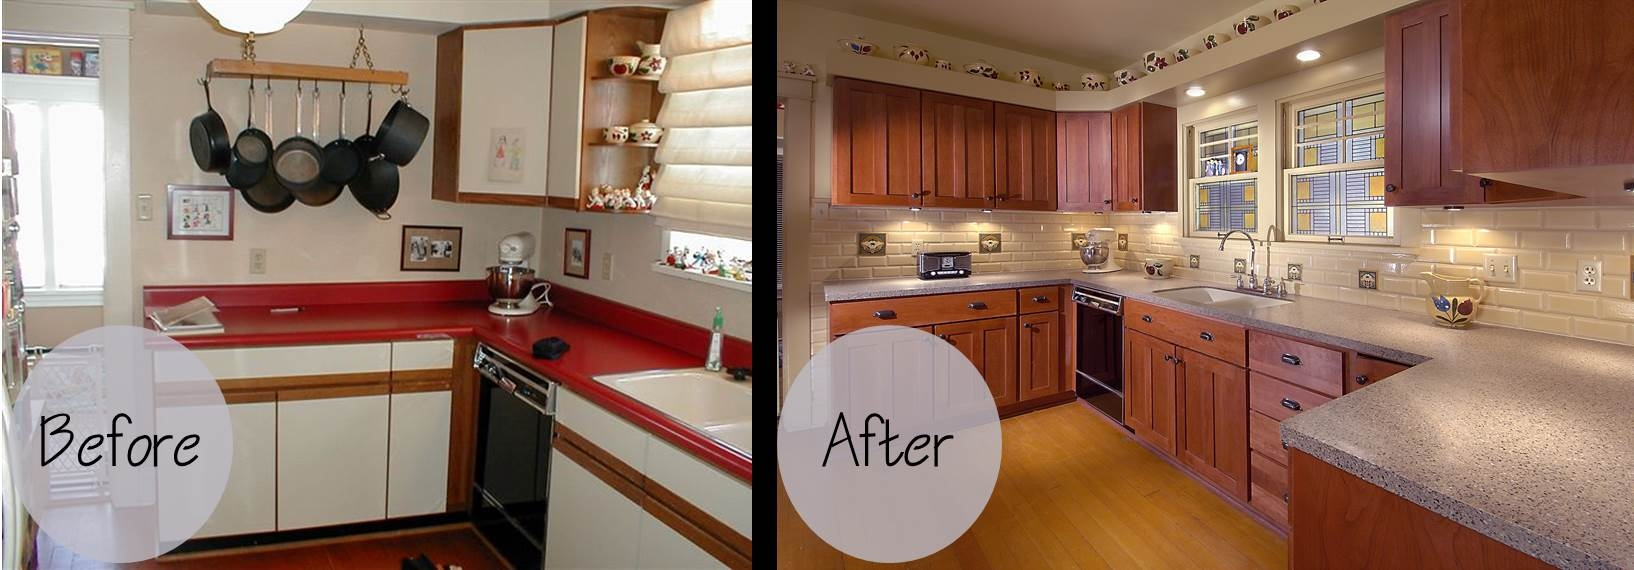 Bathroom Cabinet Refacing Before And After